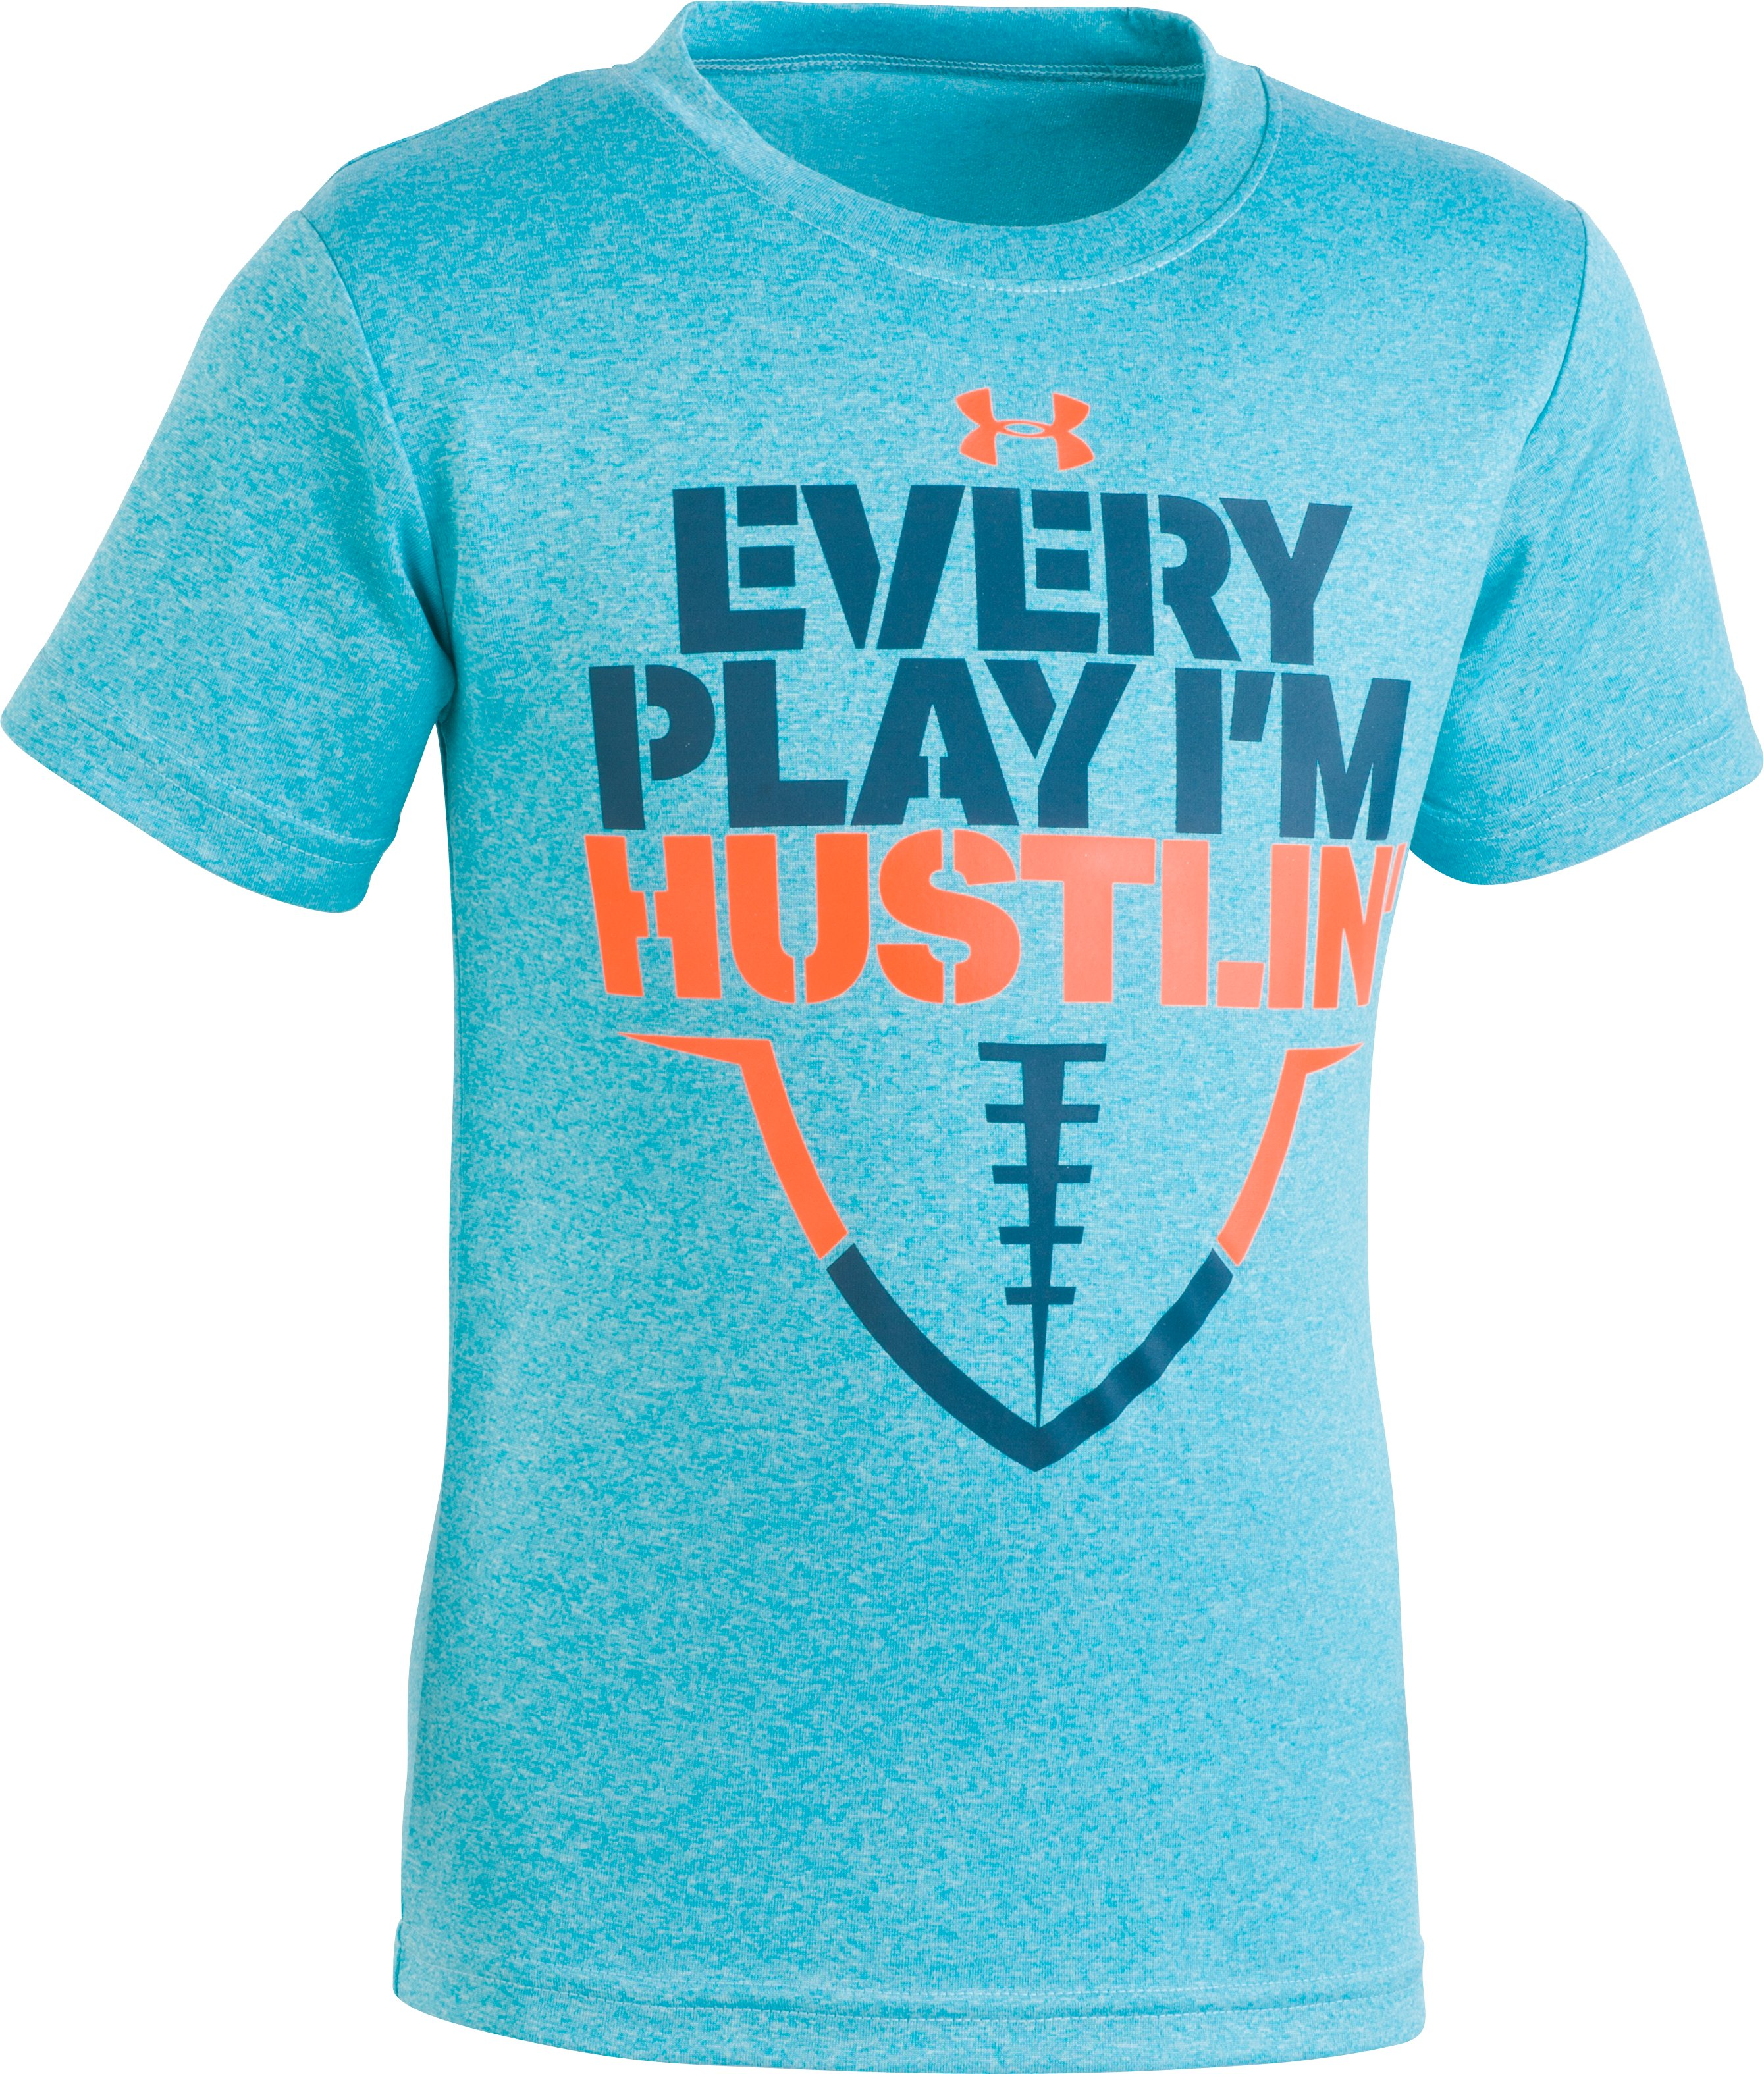 Boys' Toddler UA Every Play I'm Hustlin' Short Sleeve Shirt, Deceit, Laydown